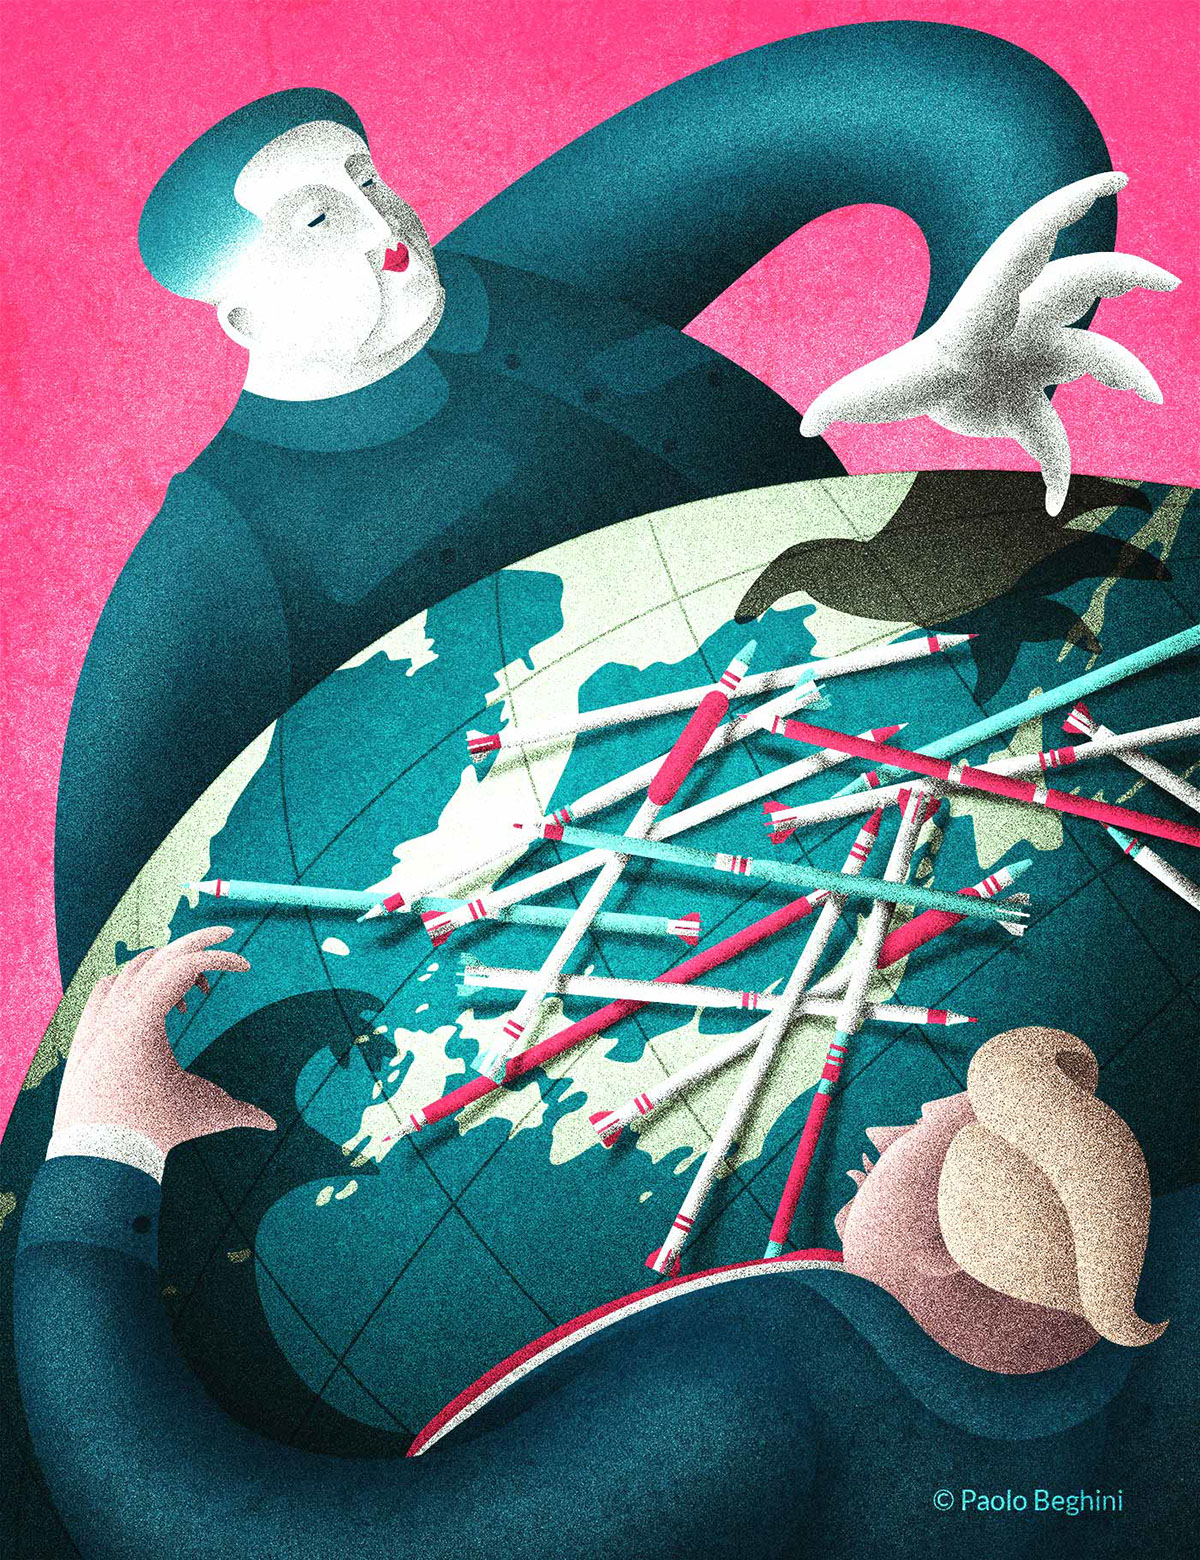 conceptual news magazine International Policy time editorial the guardian internazionale